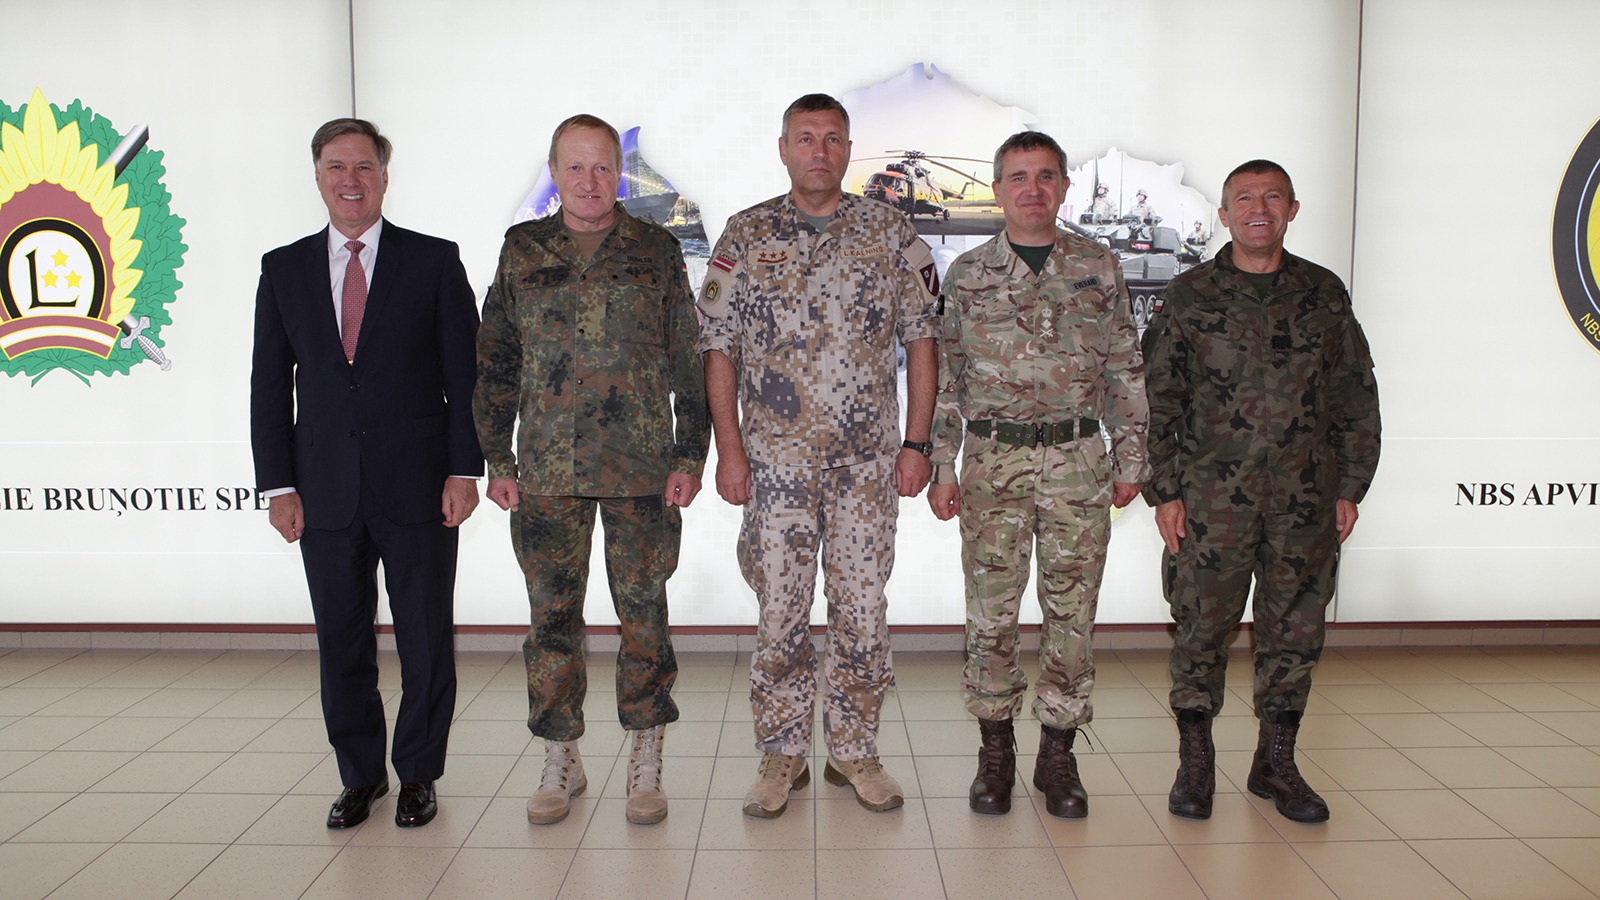 (left to right) Senior Mentor Admiral Mark Ferguson, General Erhard Buhler Joint Force Command Brunssum, Lieutenant General Leonids Kalnins Chief of Defence Republic of Latvia, General Sir James Everard, Deputy Supreme Allied Commander Europe, Supreme Headquarters Allied Powers Europe, Major General Adam Joks, JFTC Commander